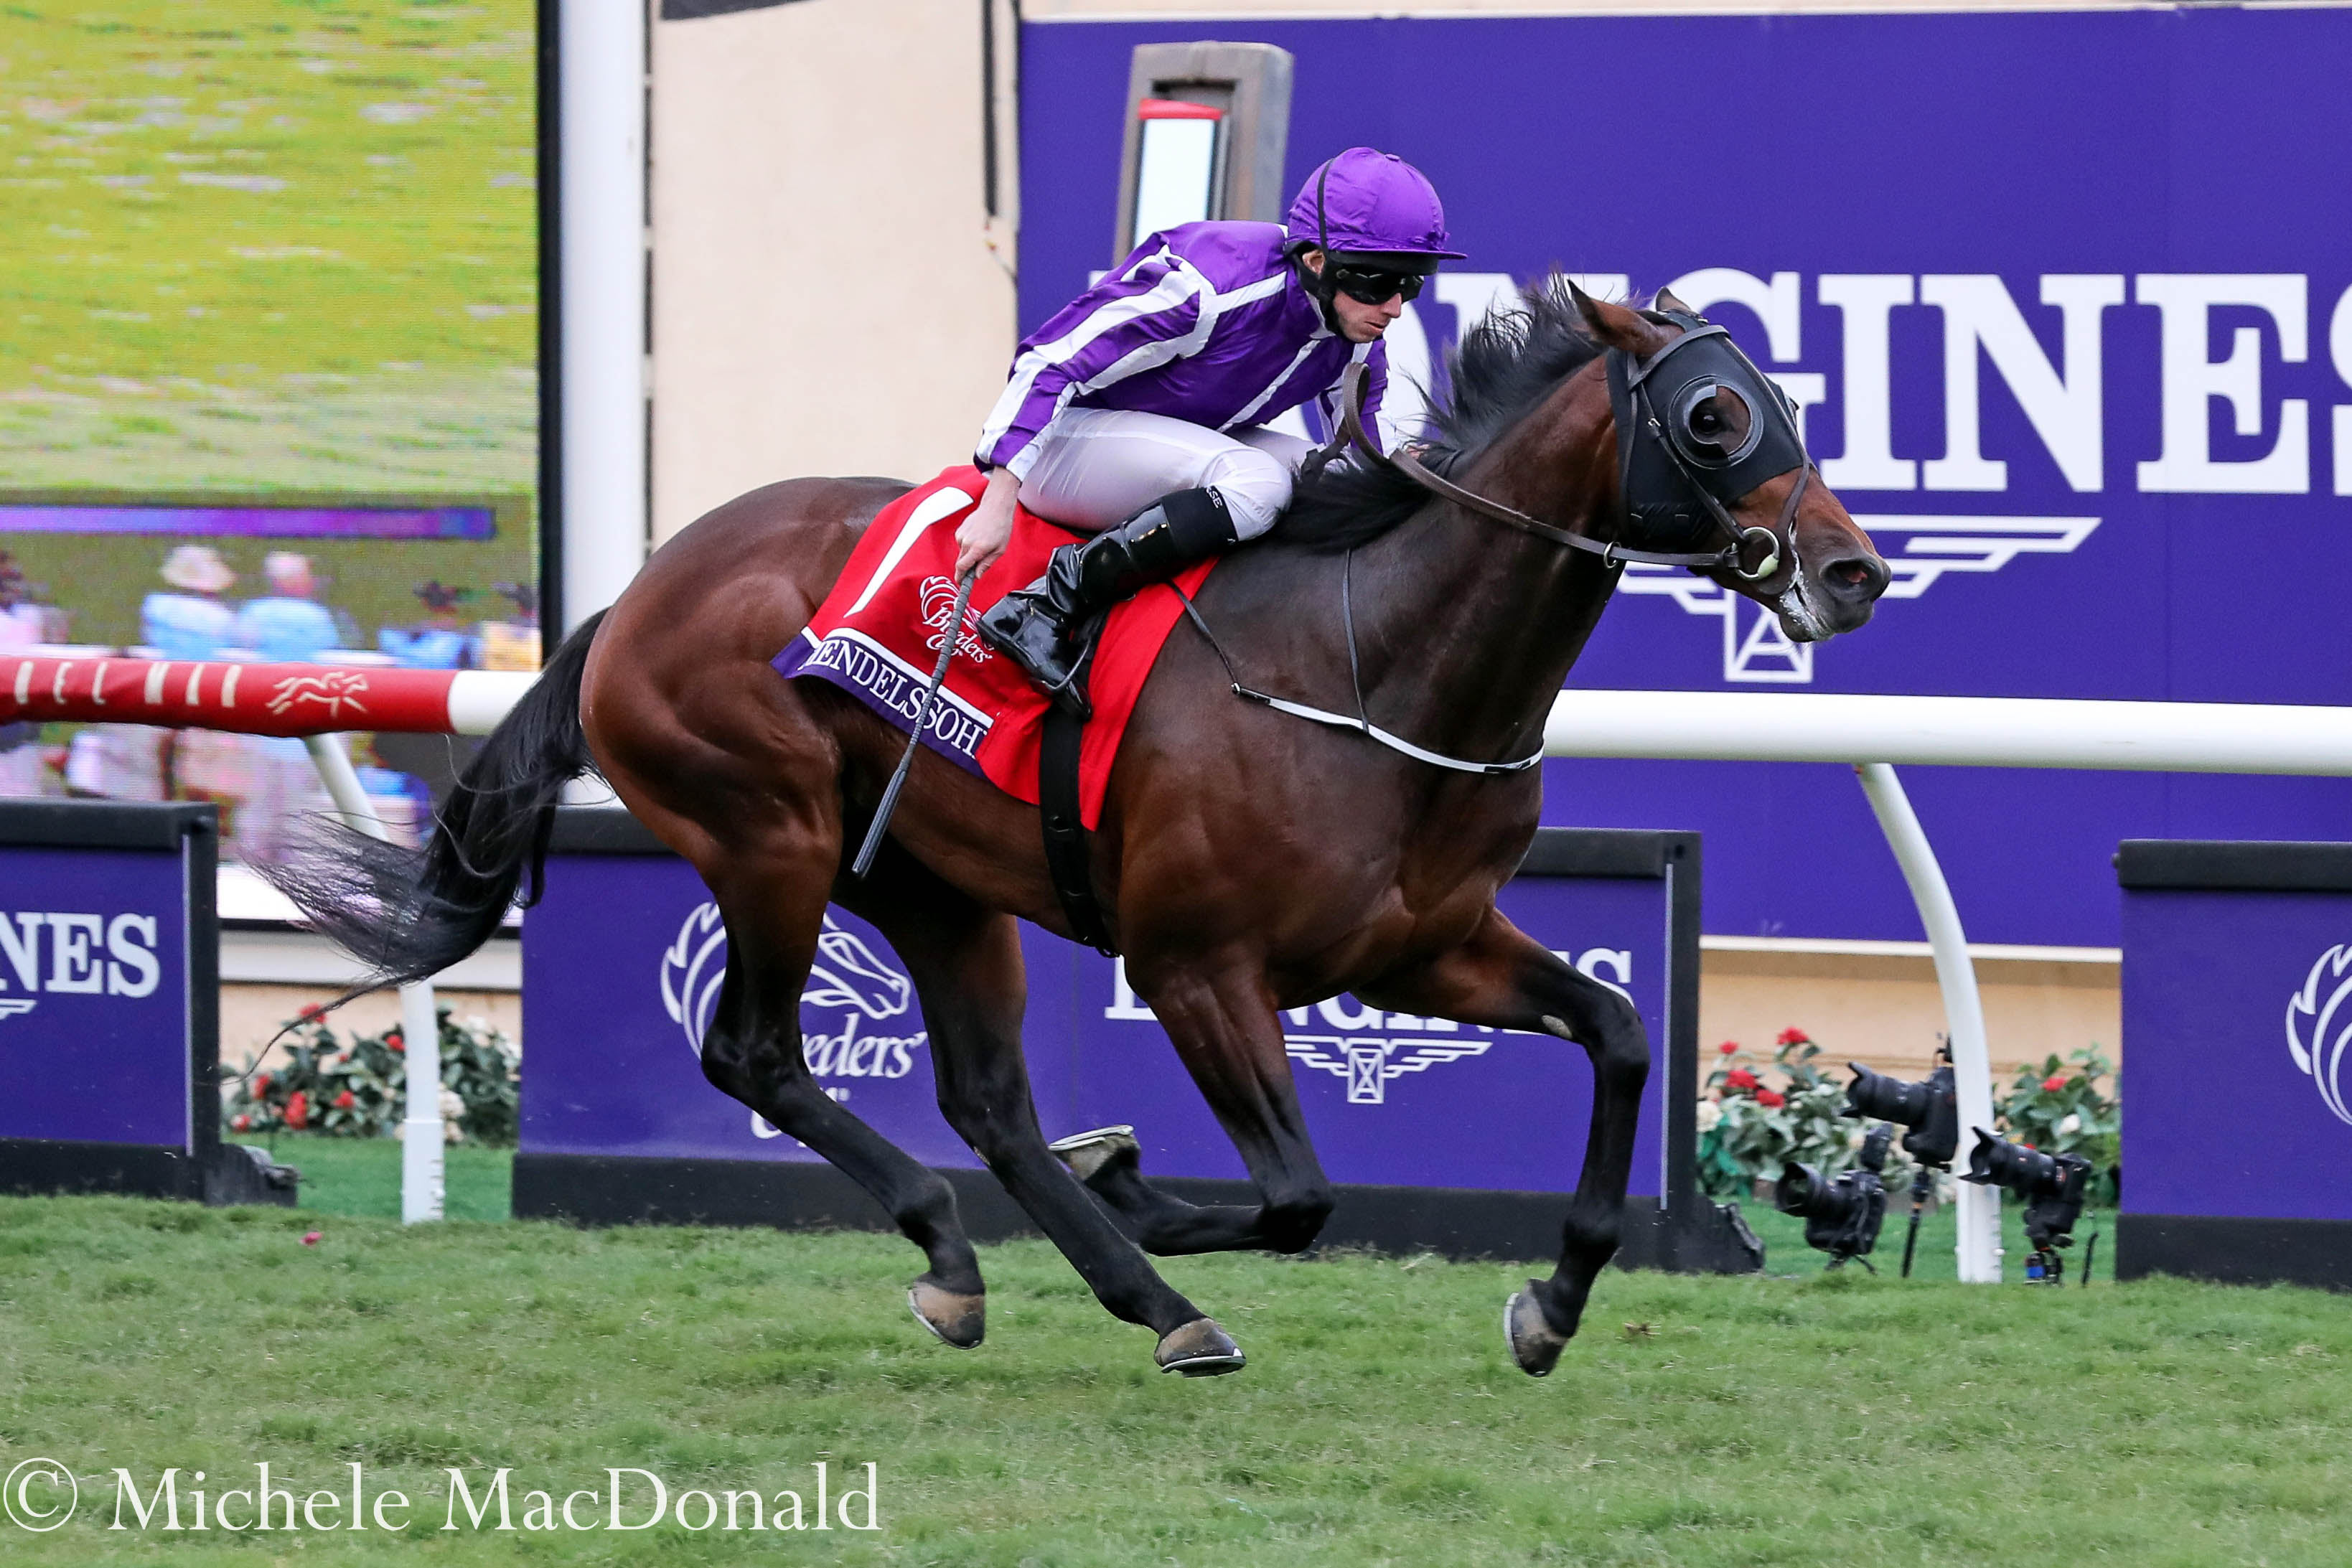 Mendelssohn wins the Breeders' Cup Juvenile Turf at Del Mar last November. Photo: Michele MacDonald